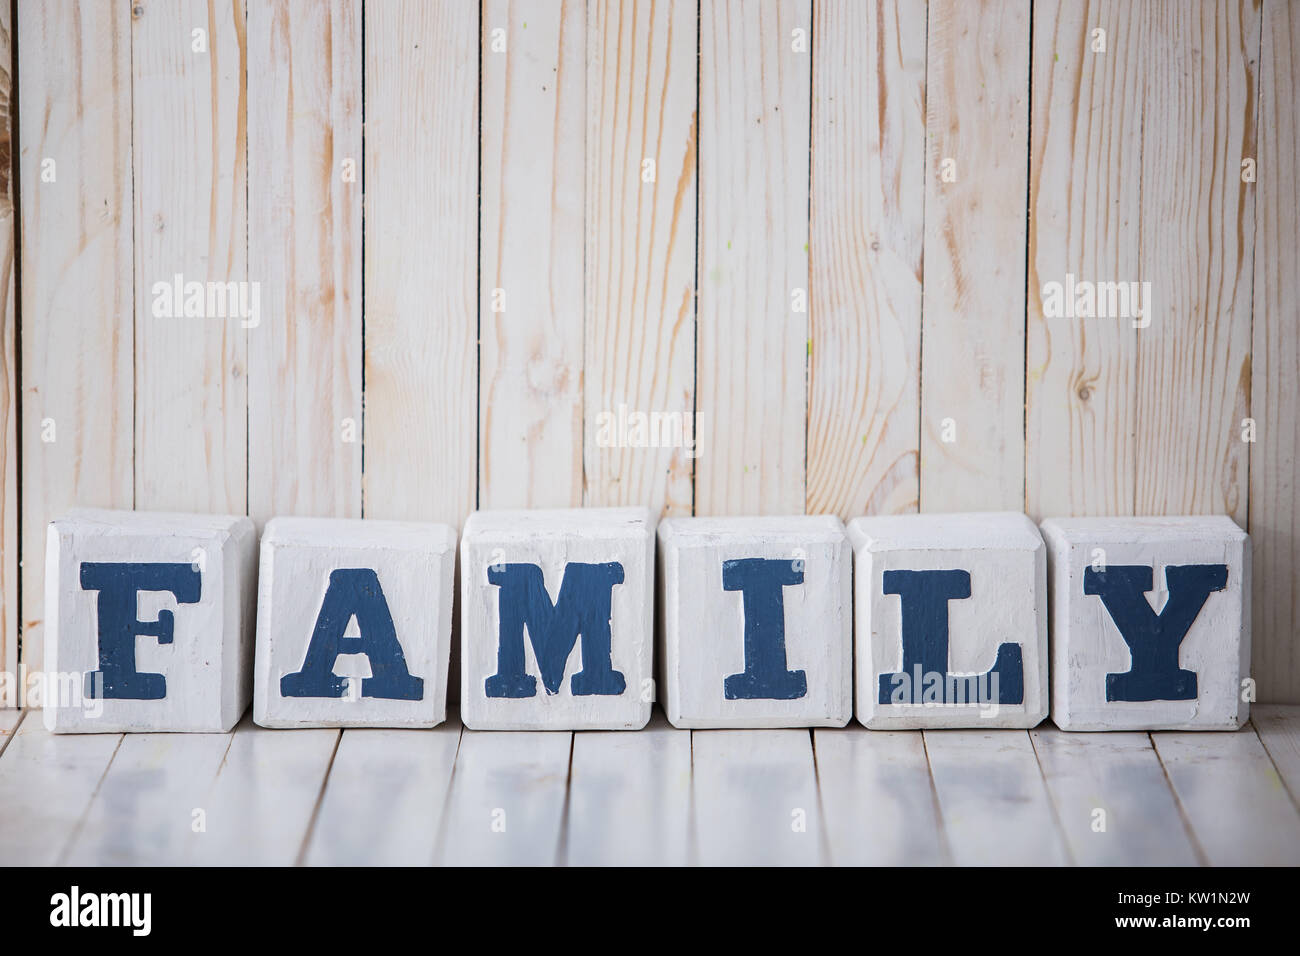 FAMILY sign made of wooden blocks on wooden background - Stock Image